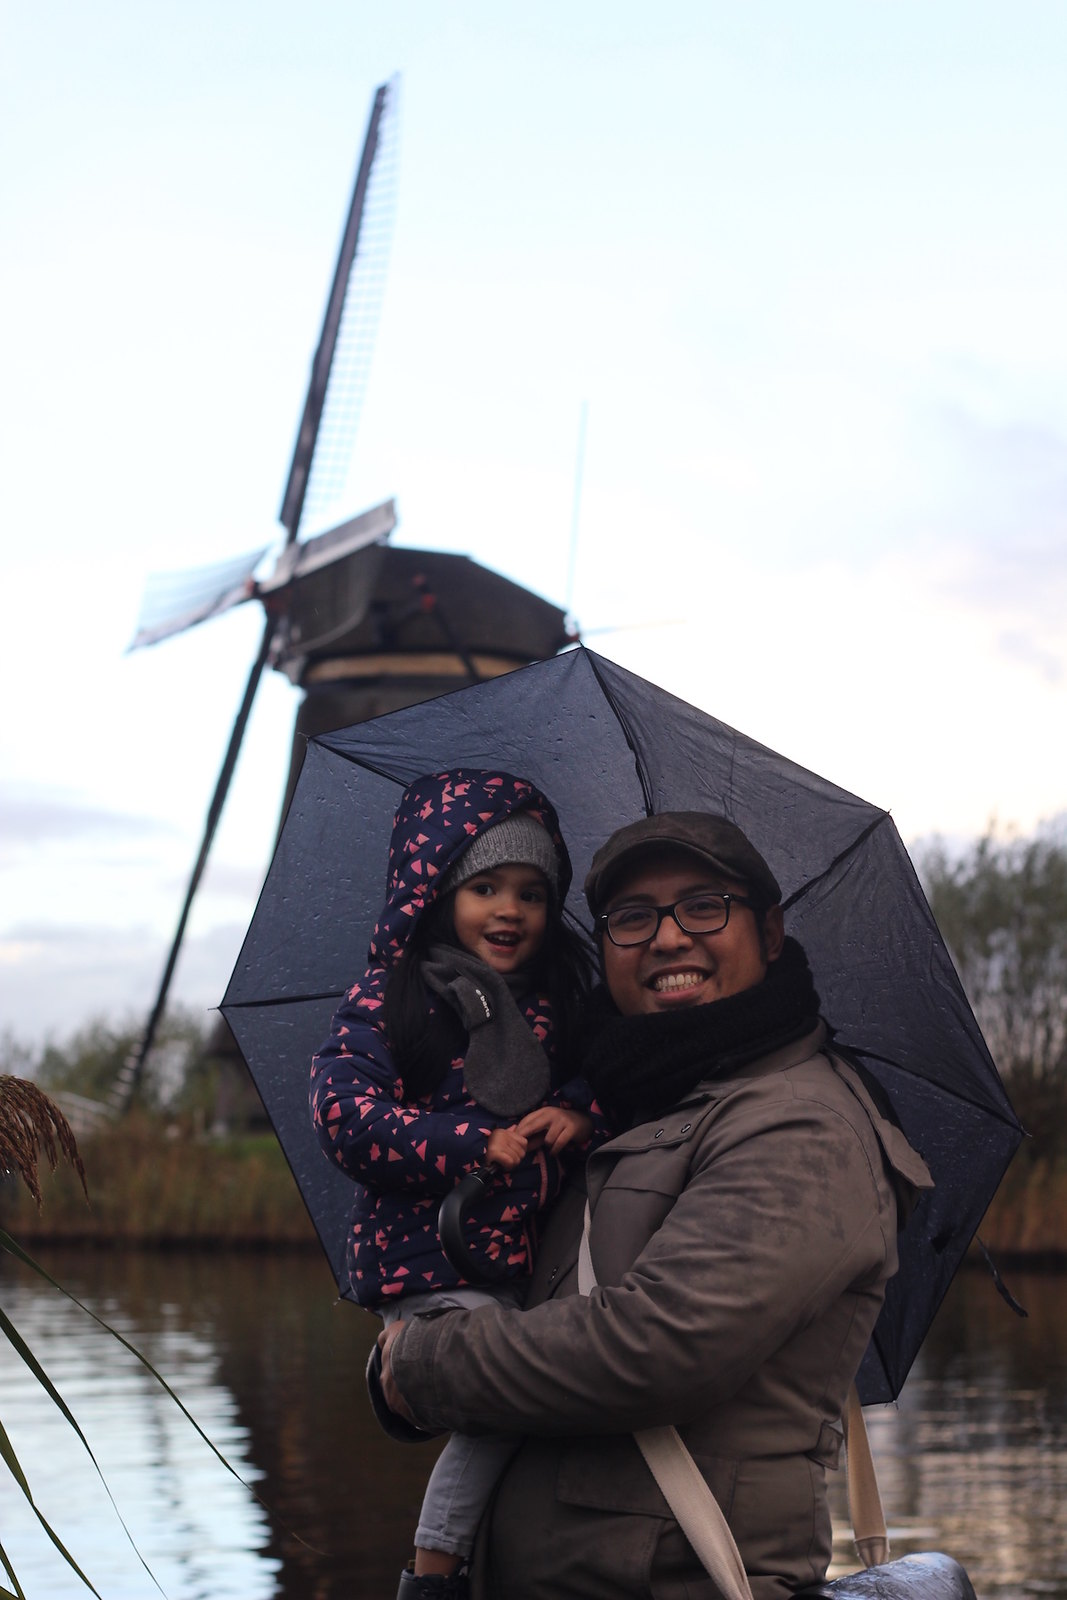 Papa and Tala at the Kinderdijk windmills